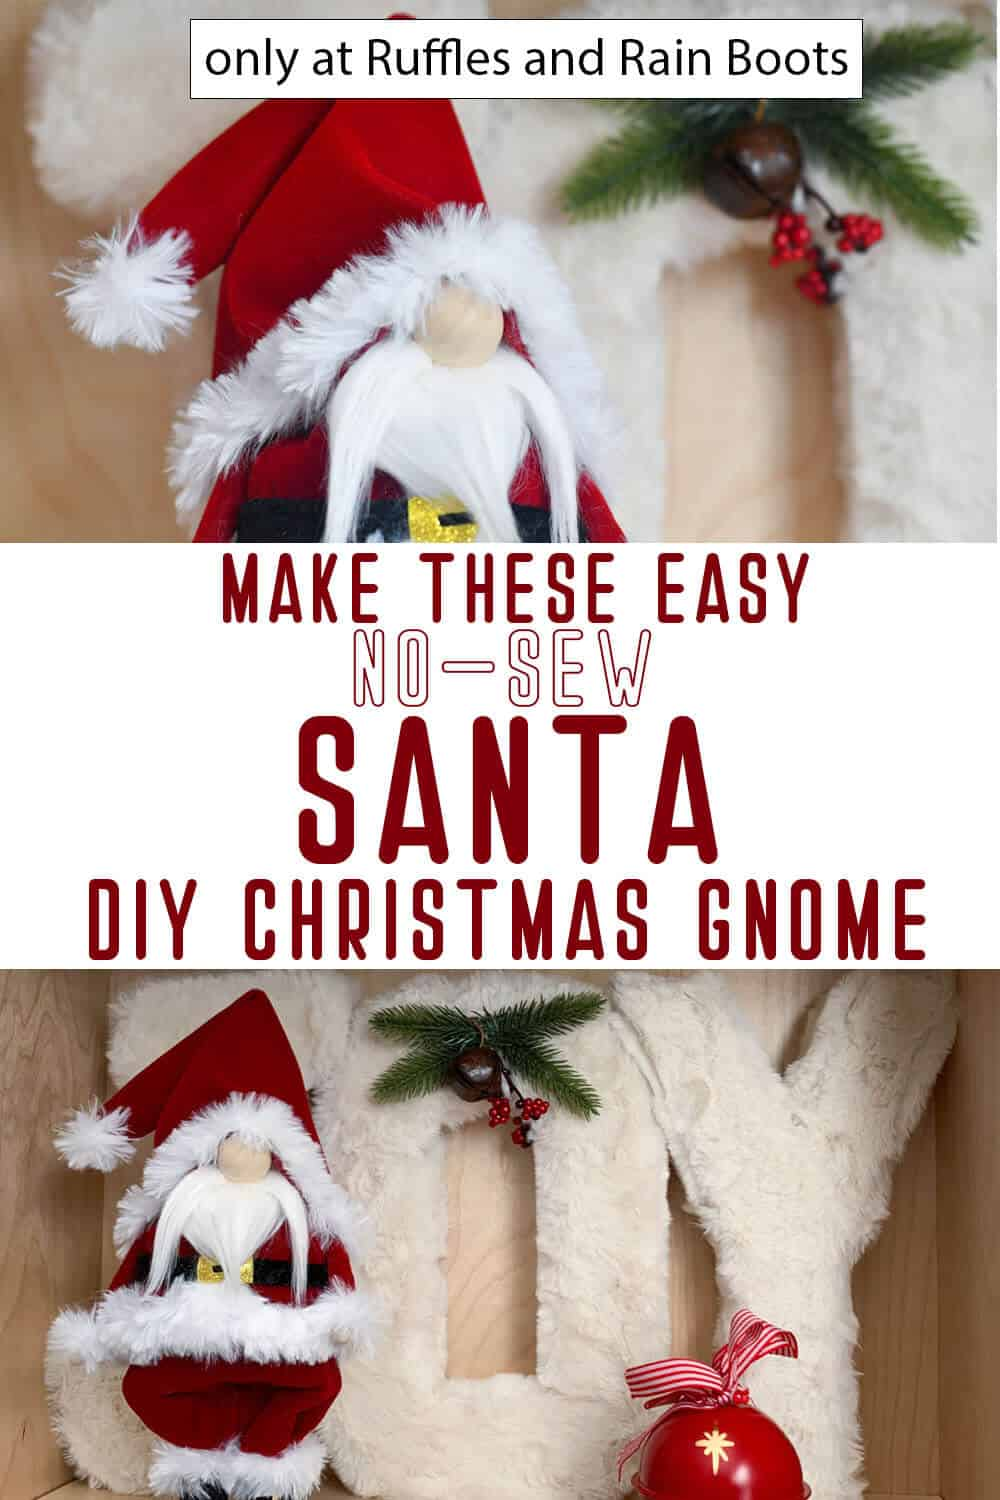 photo collage of diy christmas gnome santa claus with text which reads make these easy no-sew santa diy christmas gnome